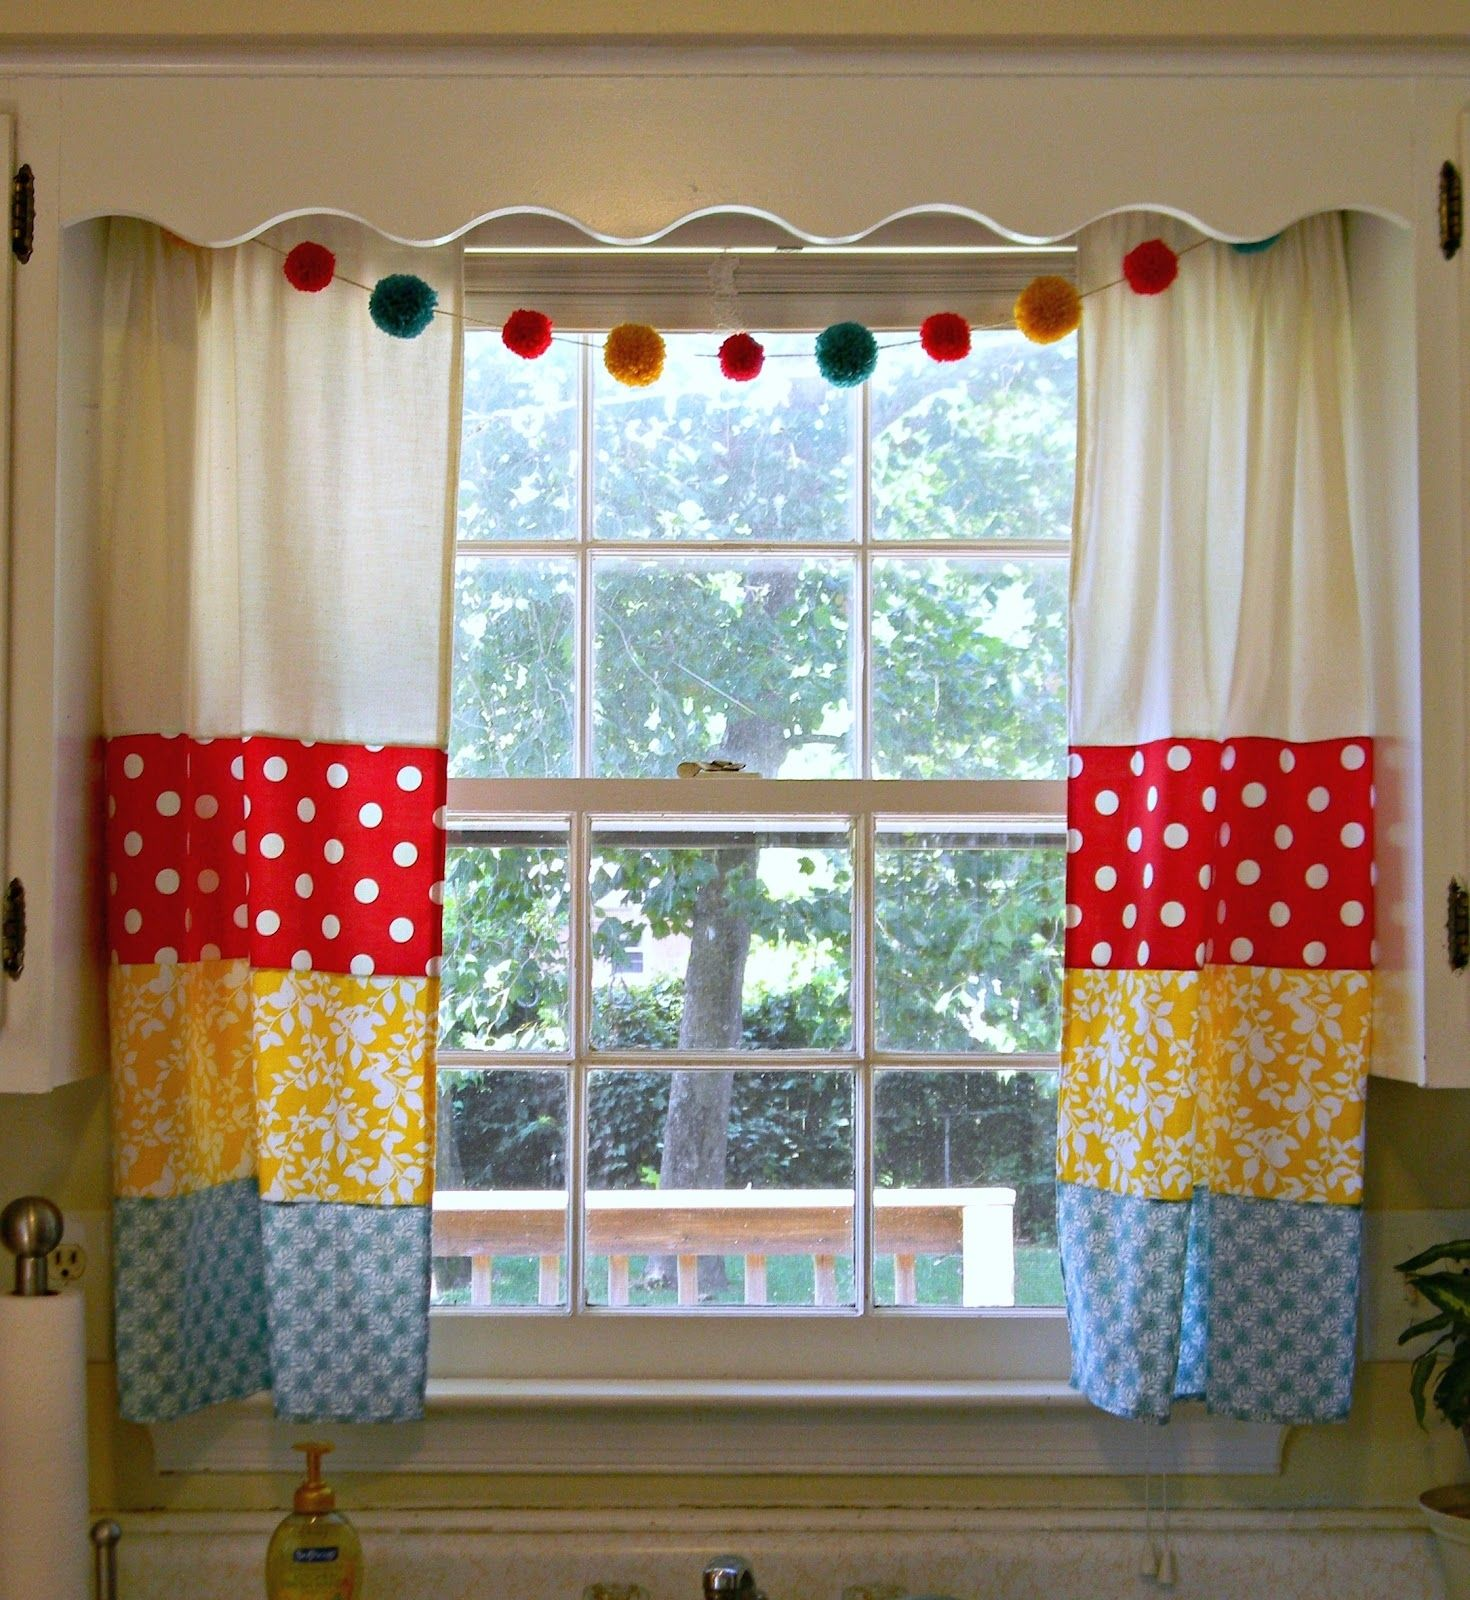 kitchen treatments and window spaces with or curtain curtains fruit for valance windows small